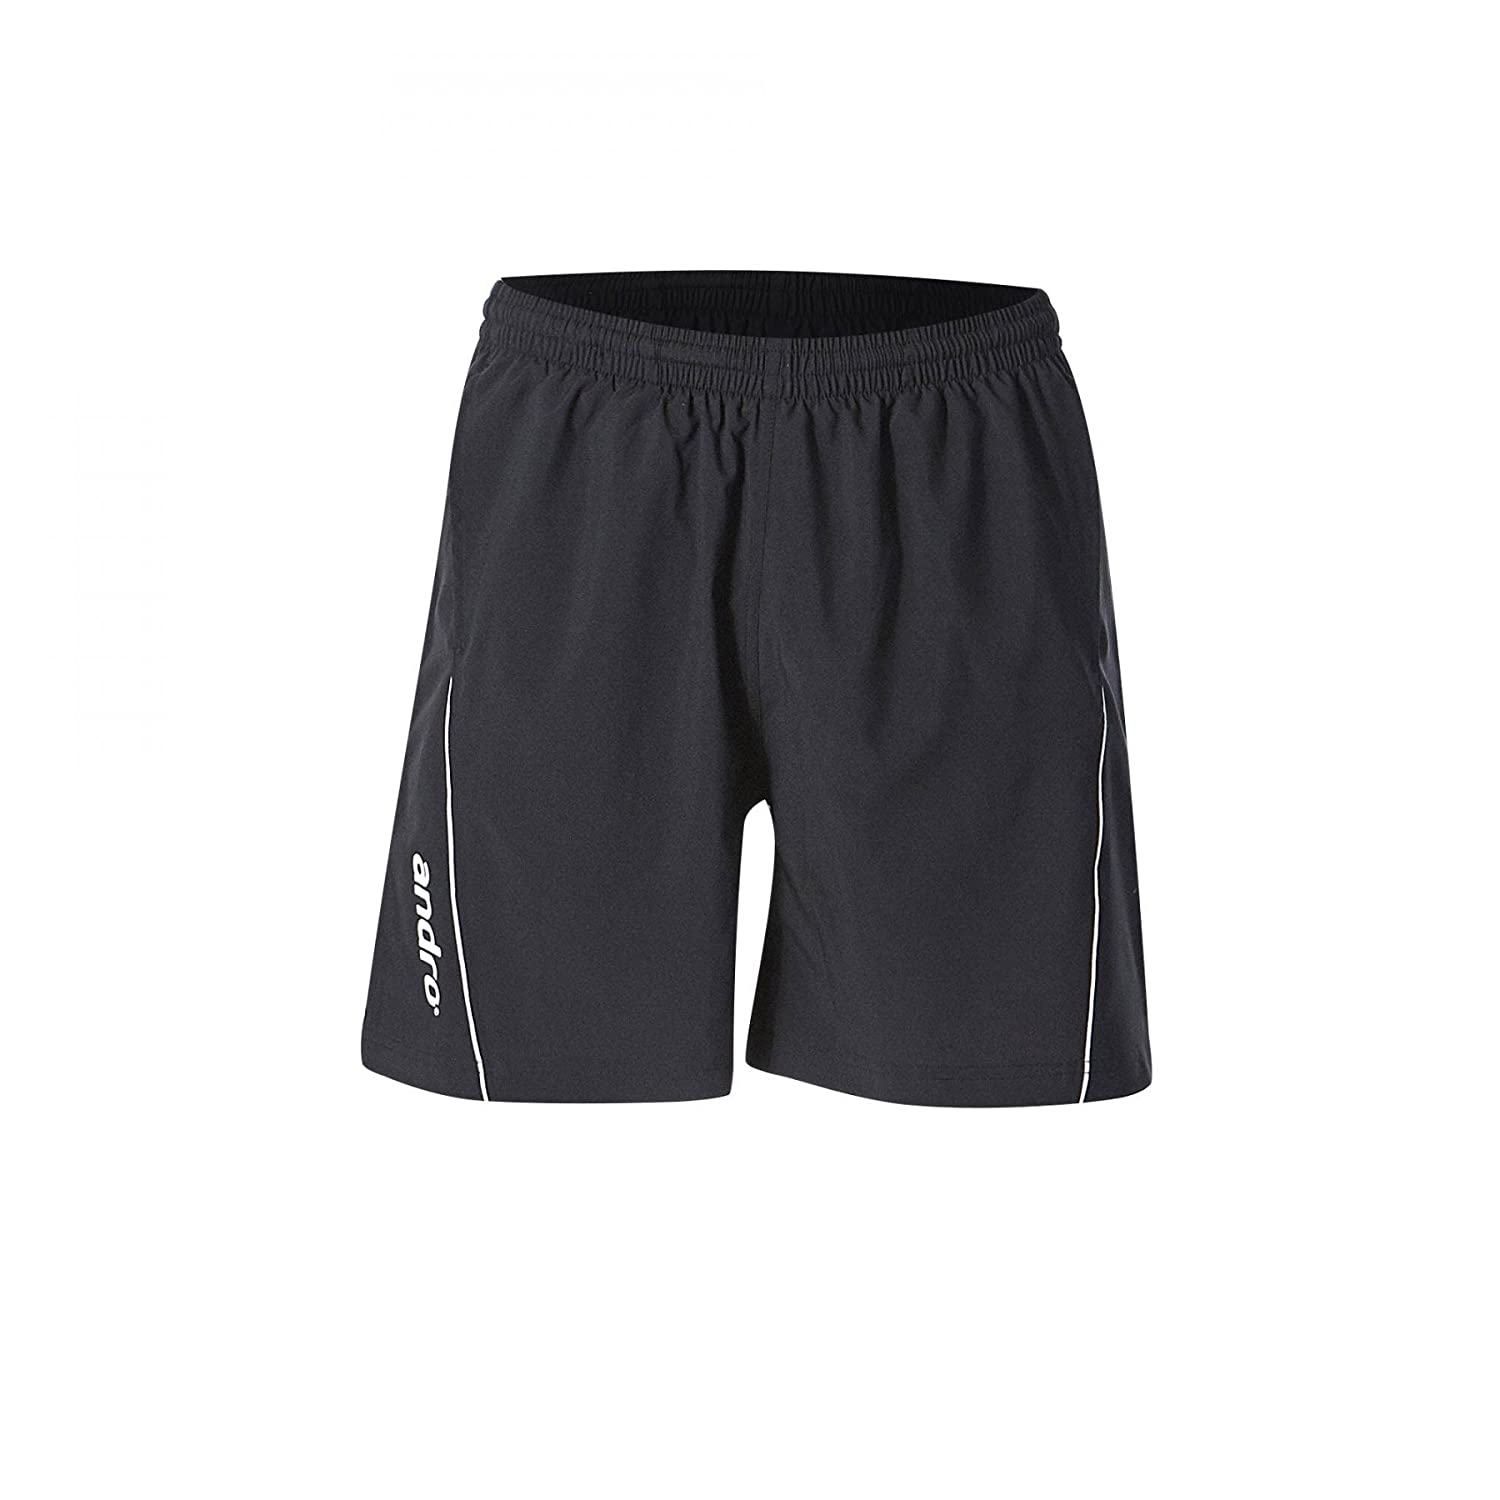 ANDRO Short Ares Ares Ares B0717879XB Bekleidung Abrechnungspreis fa7bbf